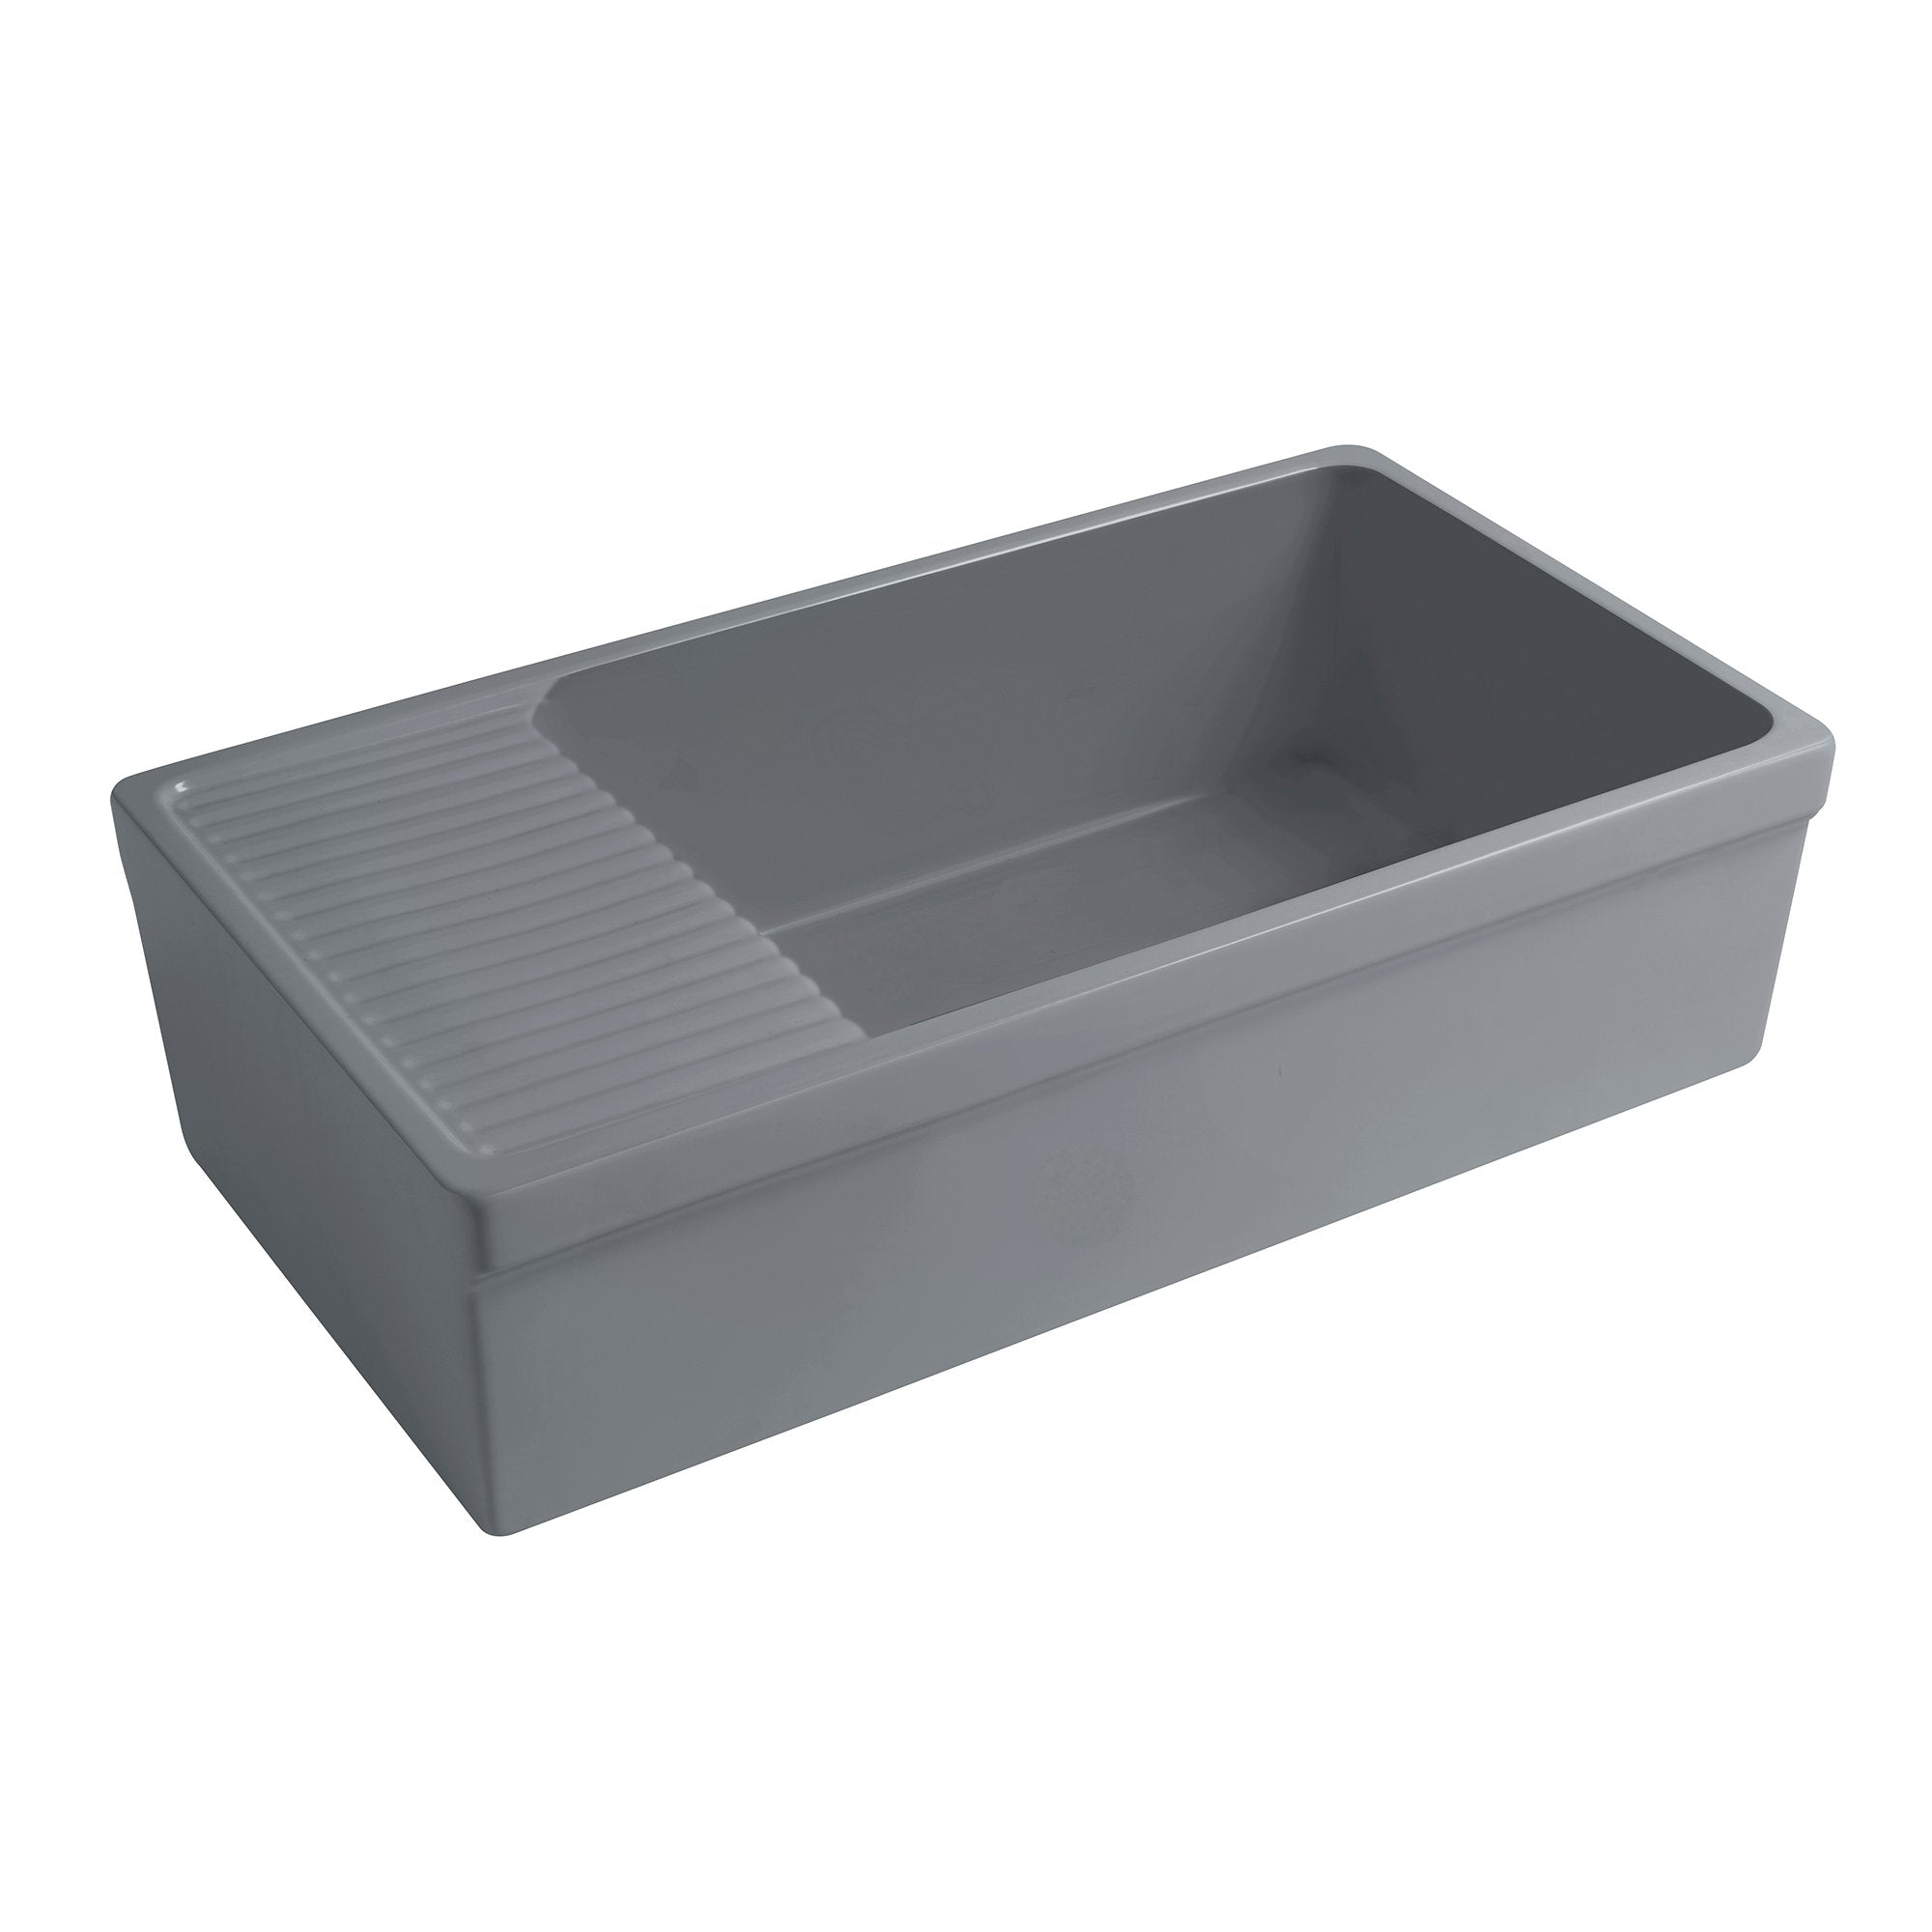 "Quatro Alcove 36"" large reversible fireclay kitchen sink with integral drainboard"